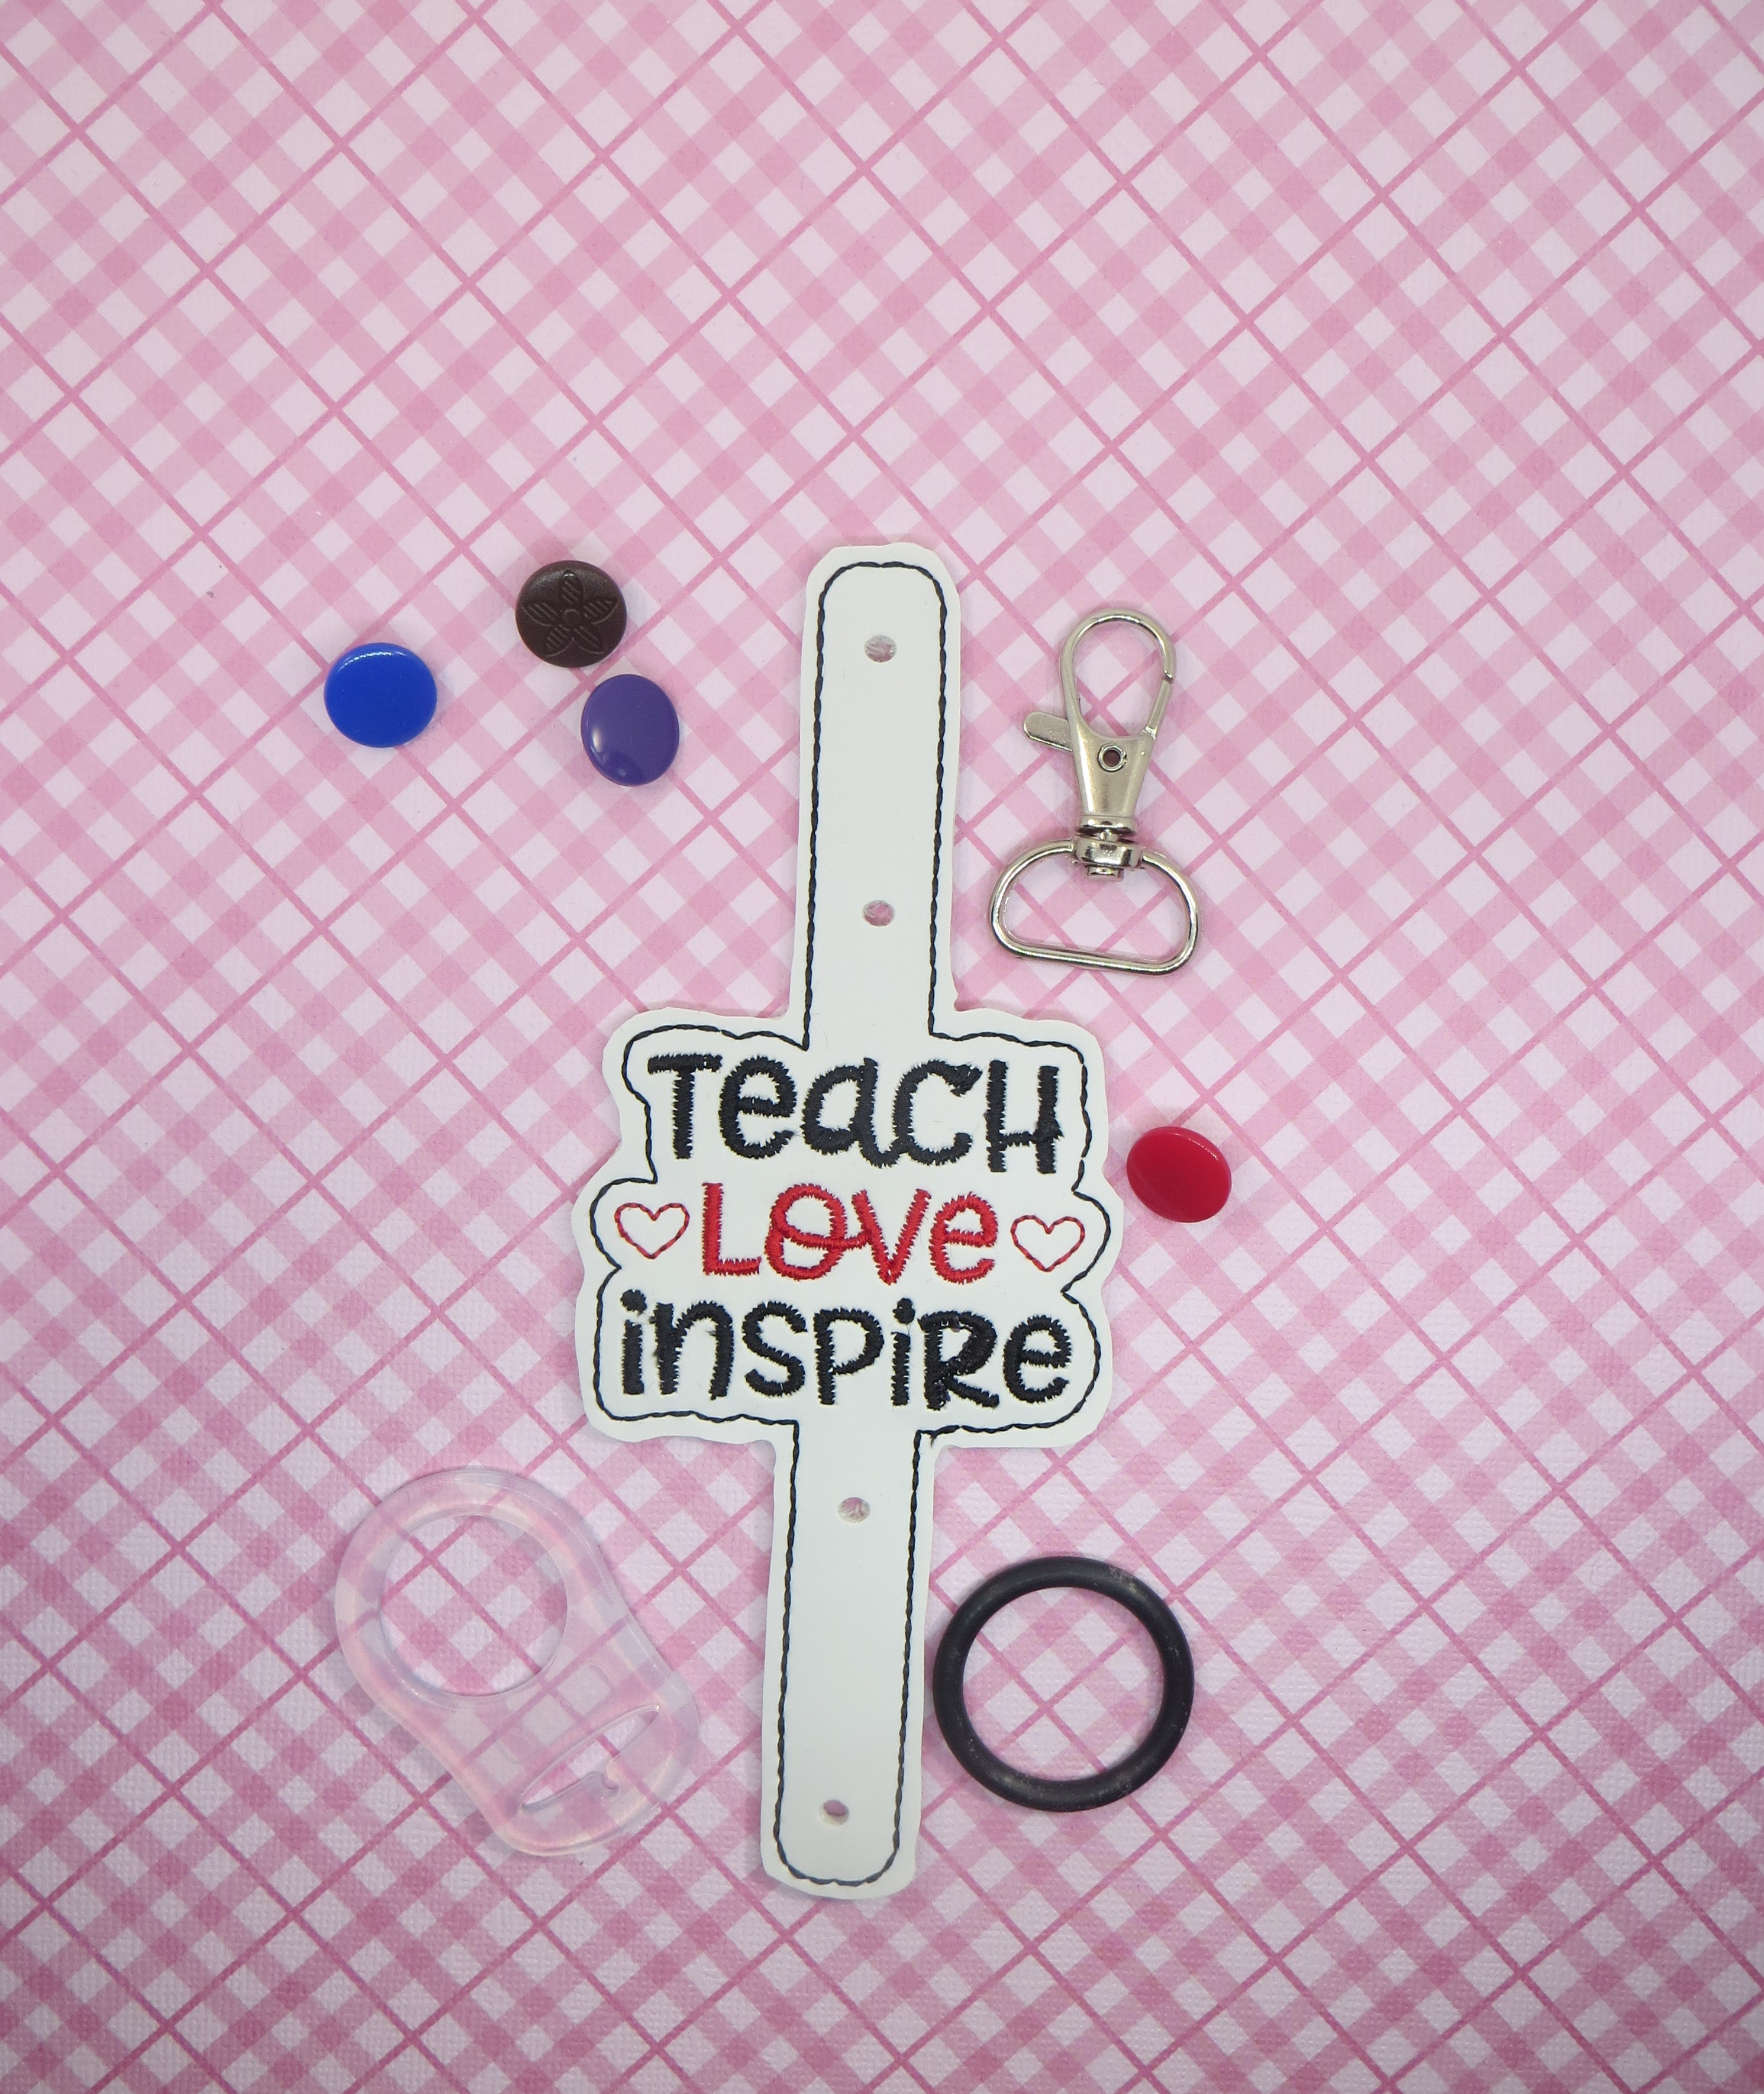 Teach Love Inspire Water Bottle Holder Embroidery Design